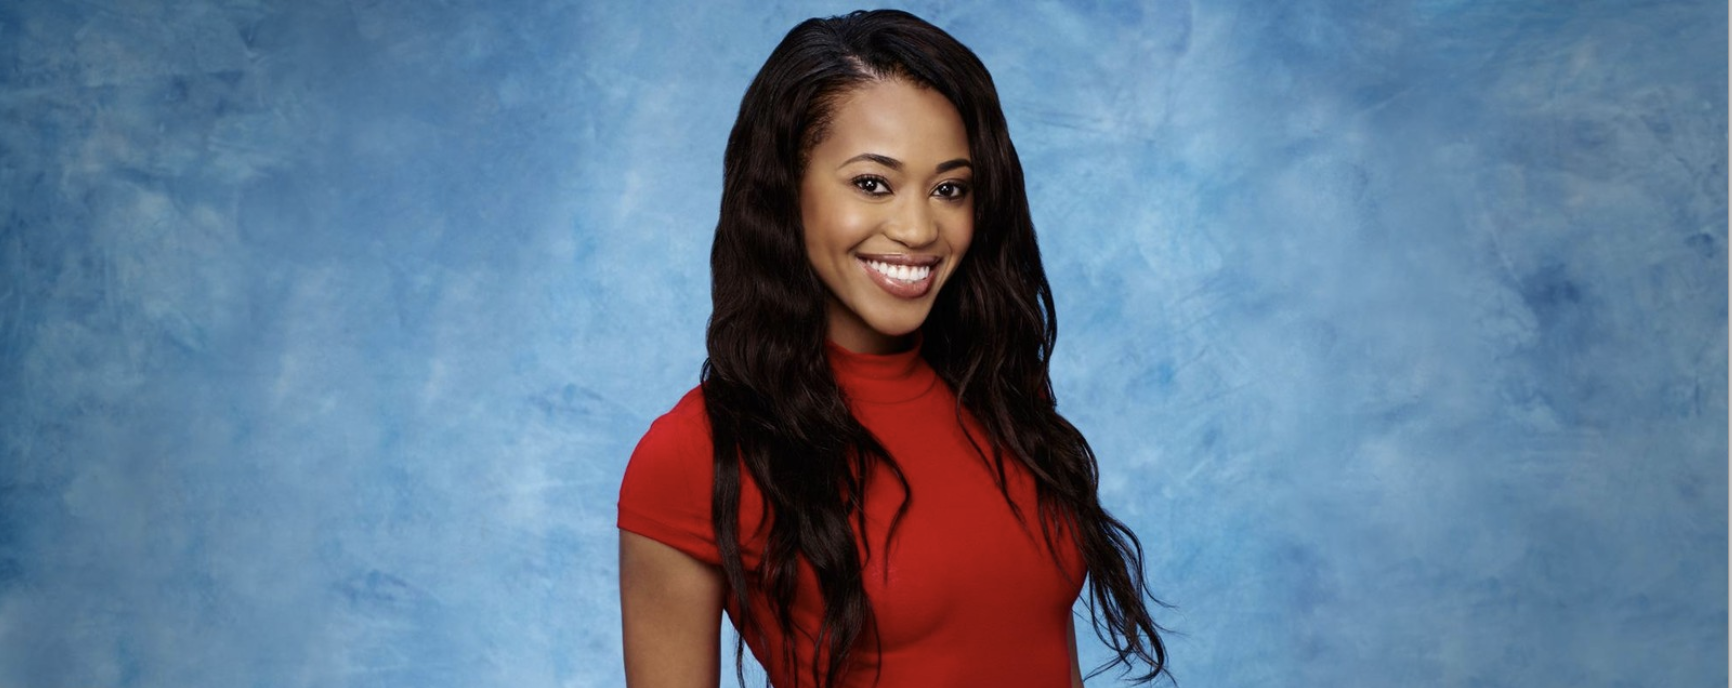 bachelor in paradise season 5, who went home on bachelor in paradise tonight, jubilee